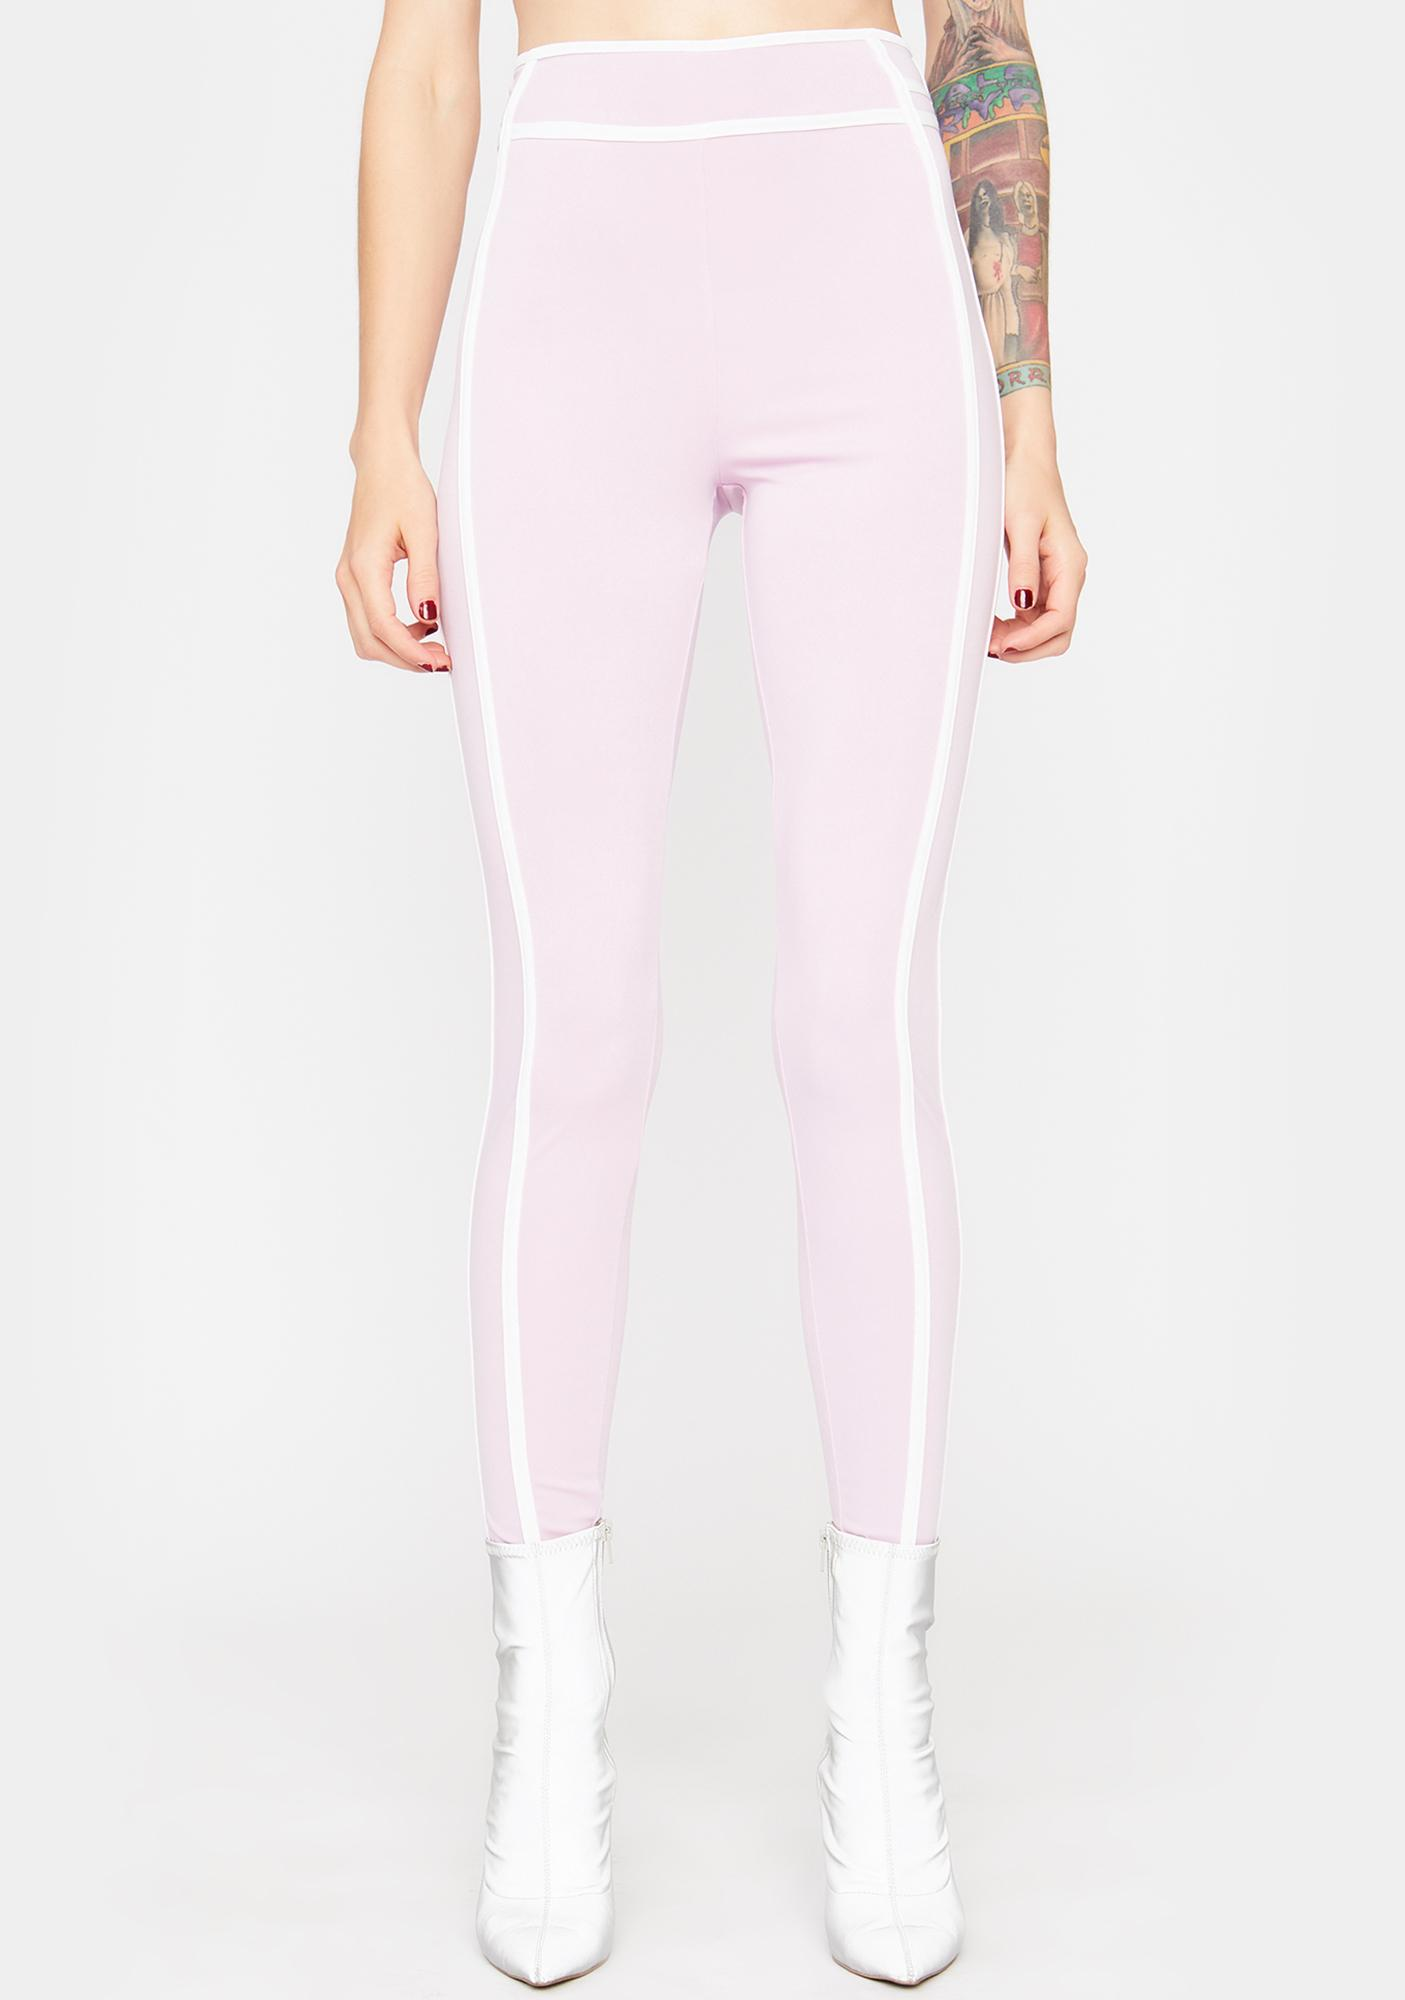 Lilac In The Mood Contrast Stitch Leggings